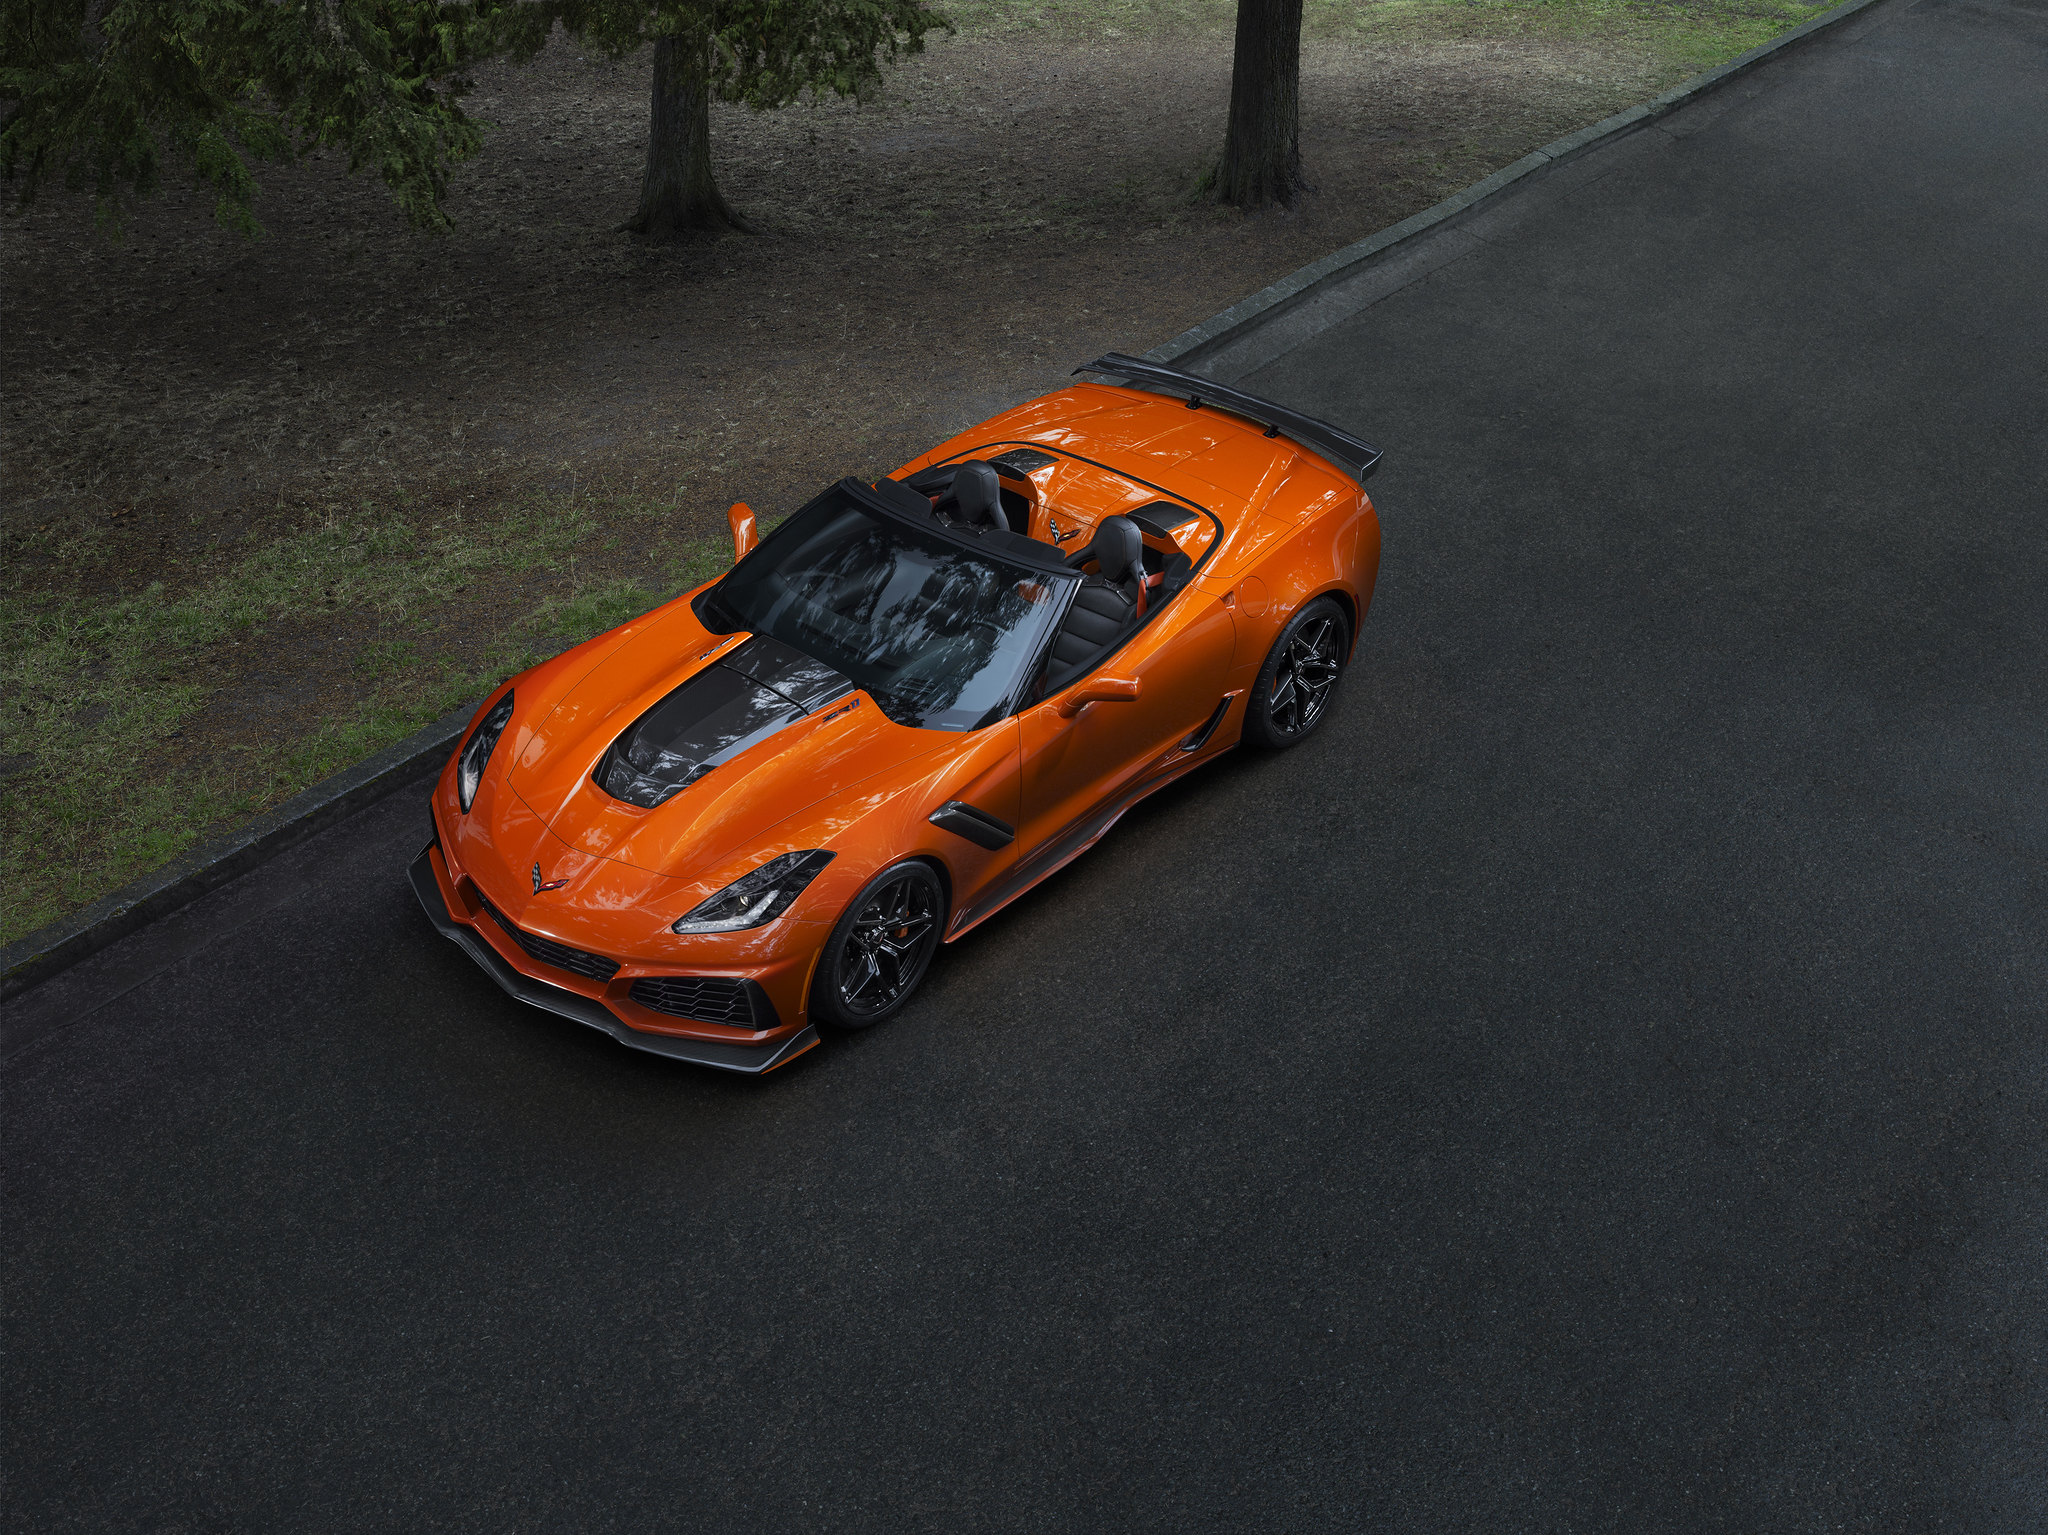 Chevrolet drops the top with the 2019 Corvette ZR1 convertible